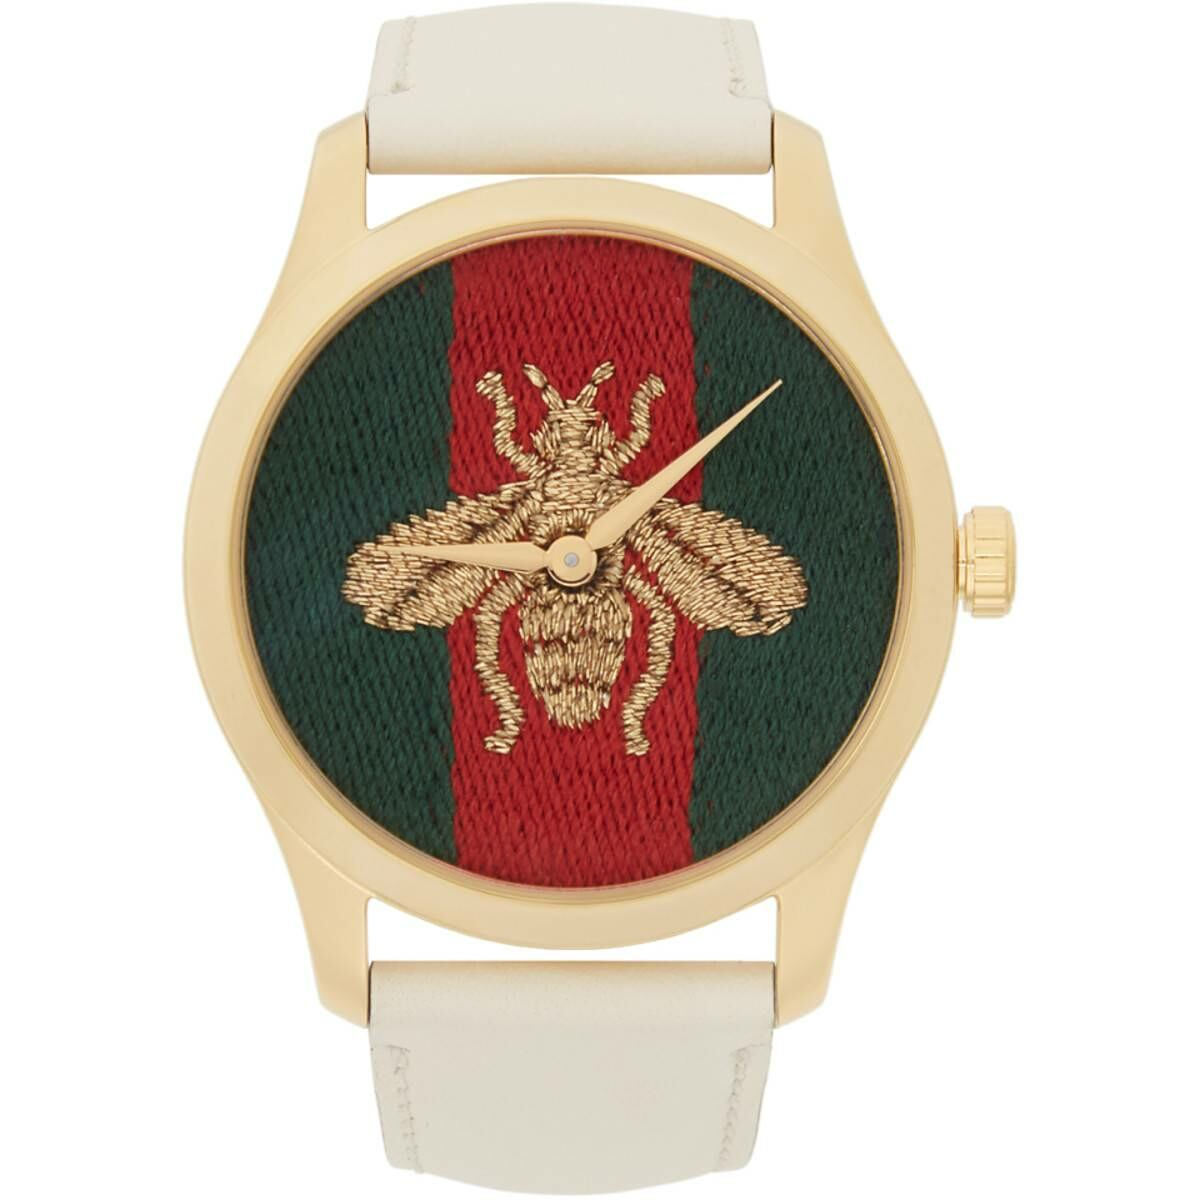 Gucci Gold and White Leather Bee G-Timeless Watch Ssense USA WOMEN Women ACCESSORIES Womens WATCHES